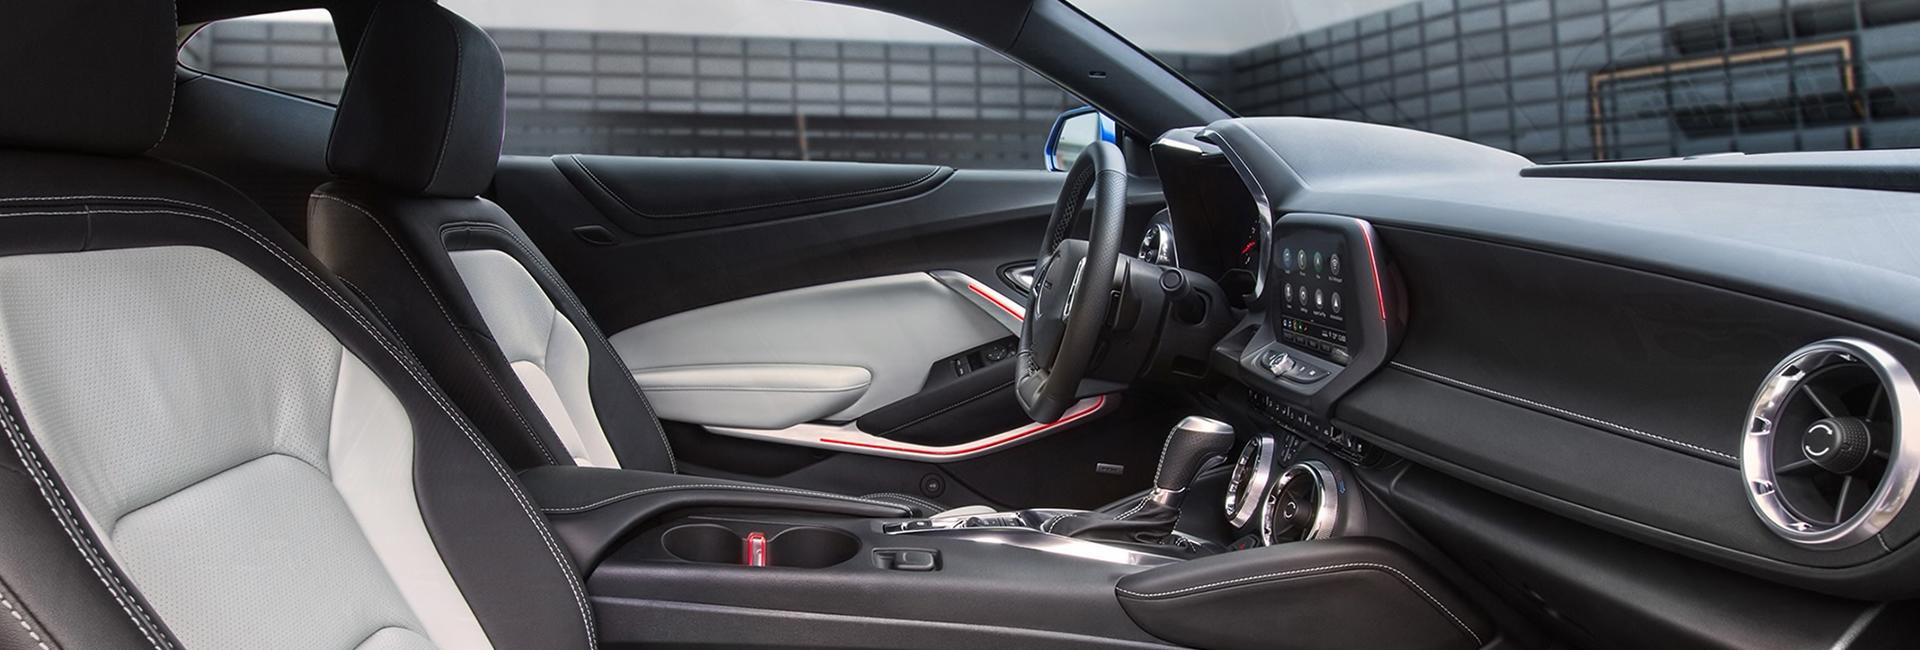 Picture of the interior of the 2020 Chevy Camaro for sale at Spitzer Chevy North Canton.